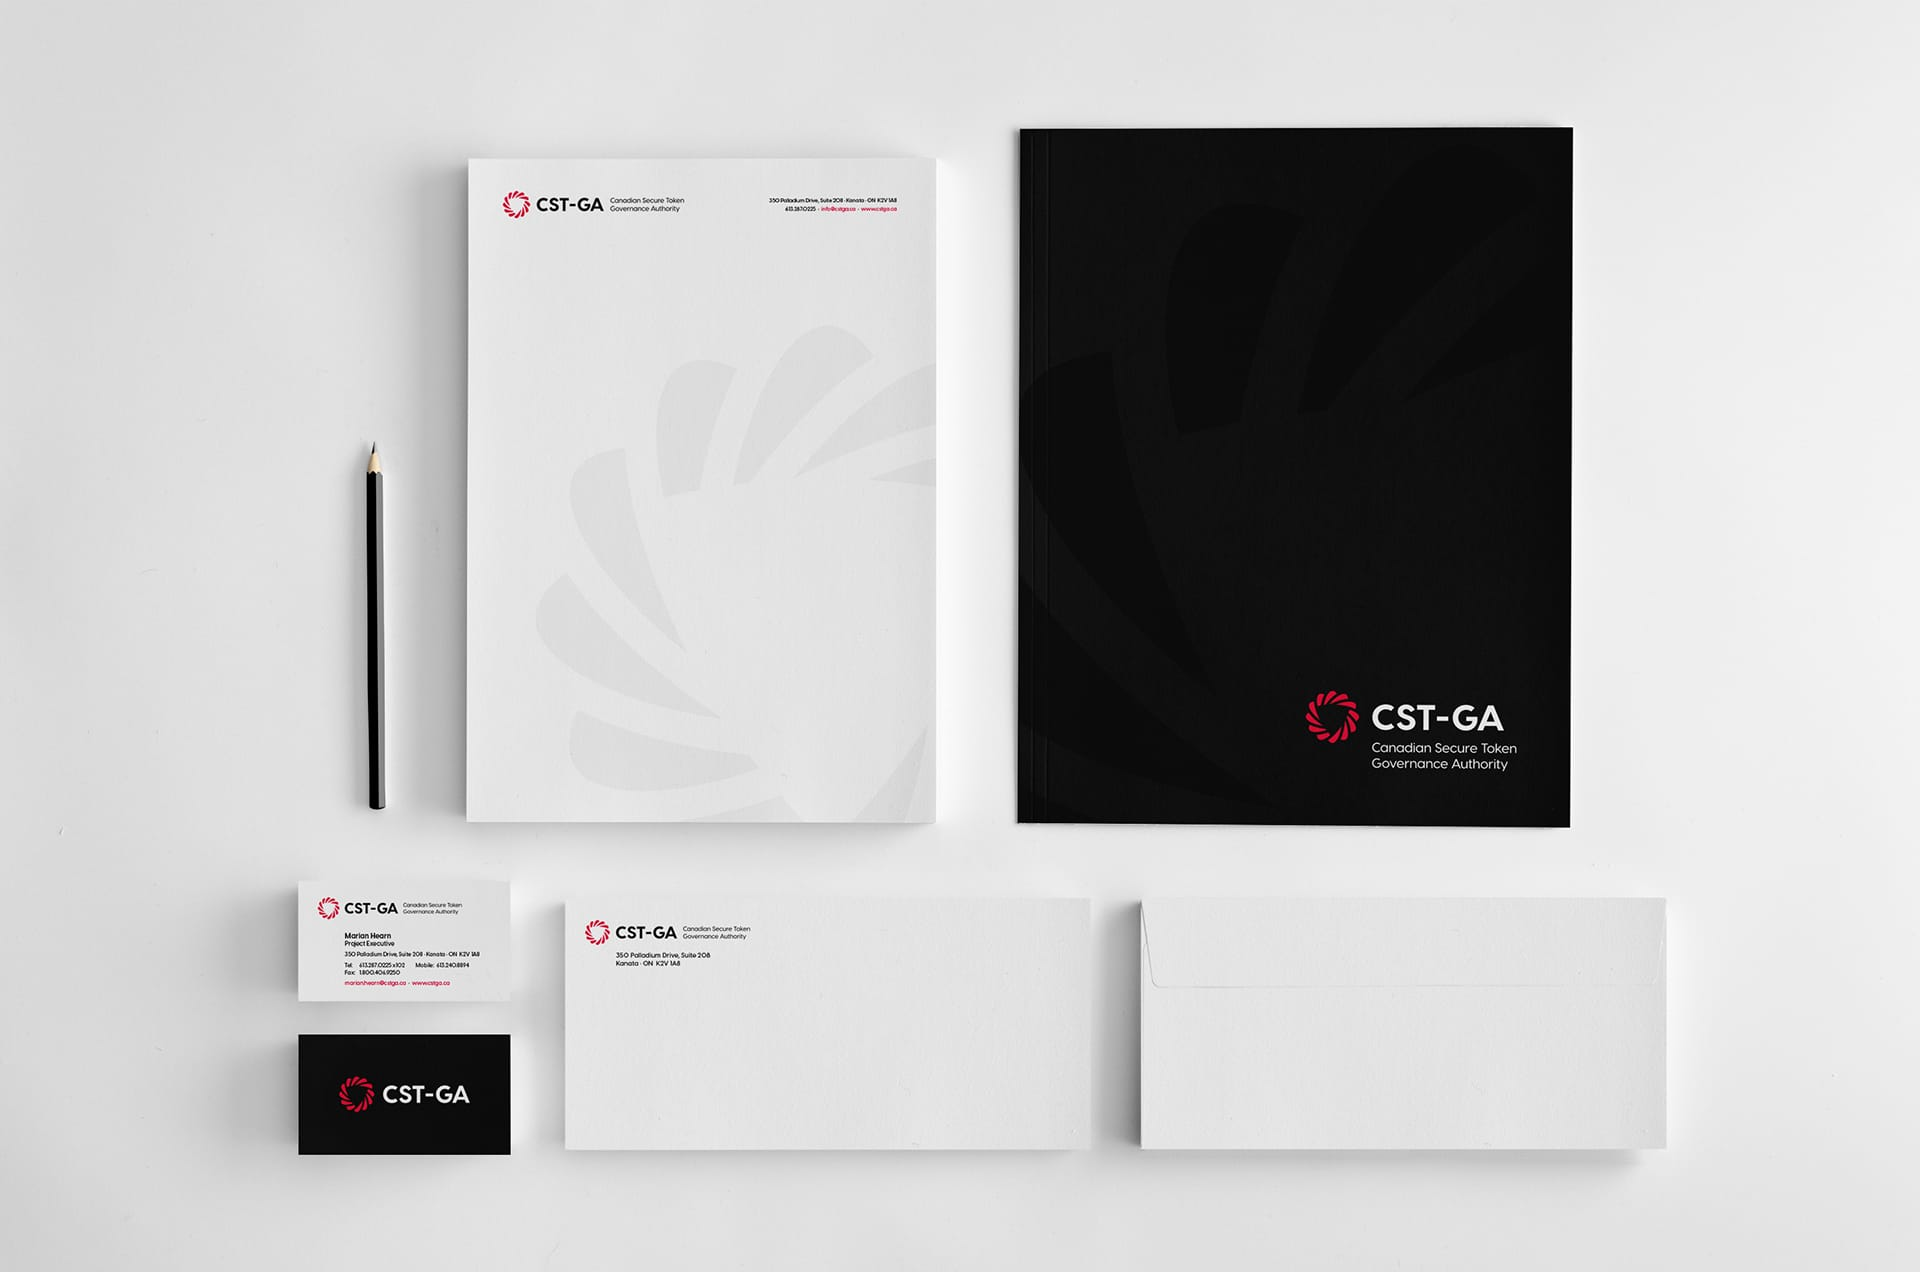 CSTGA - Stationery Design